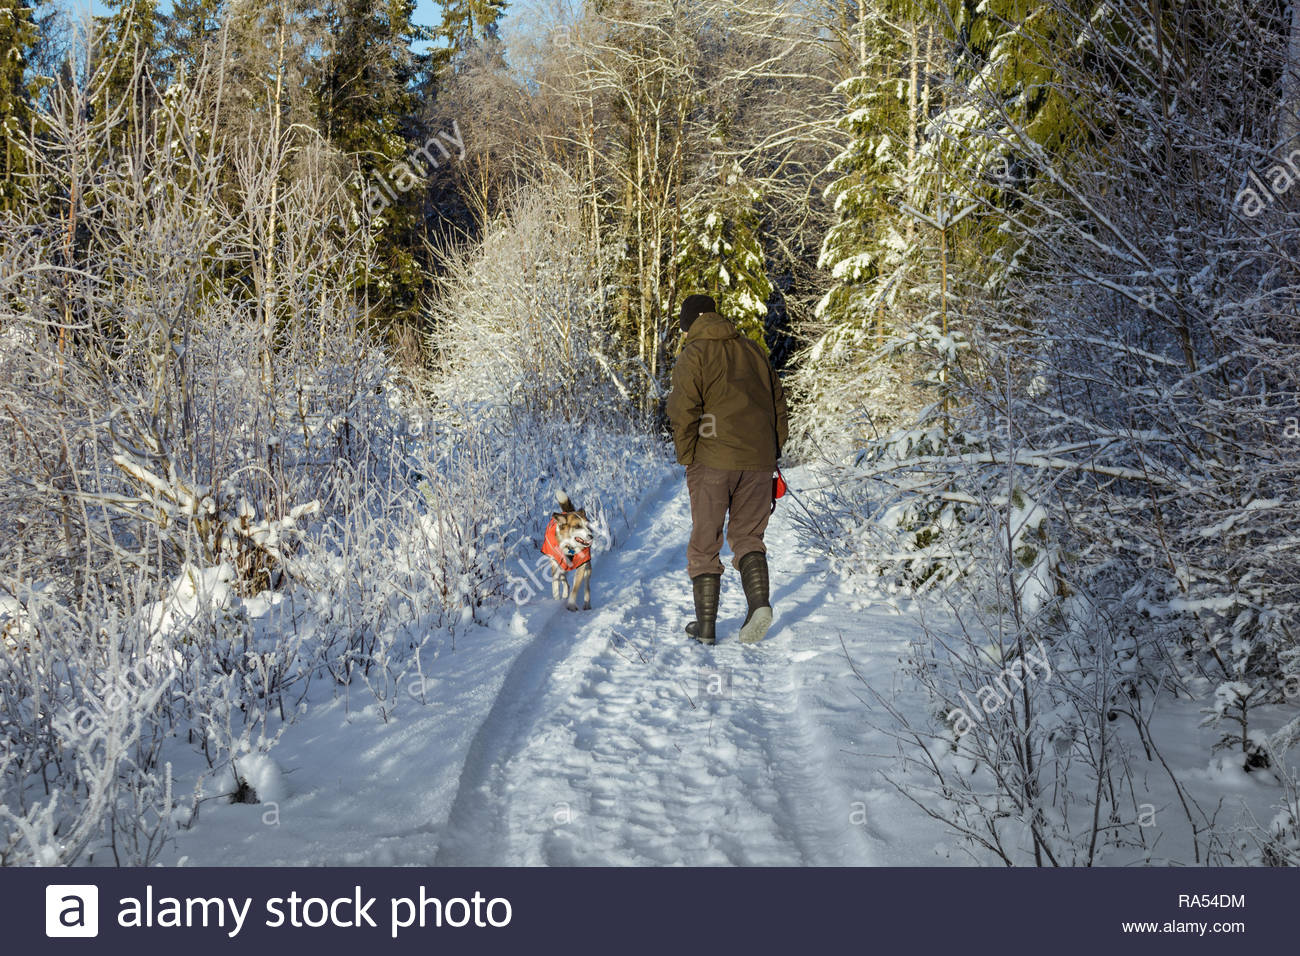 winterwalk through deep snow with a man and a dog - Stock Image